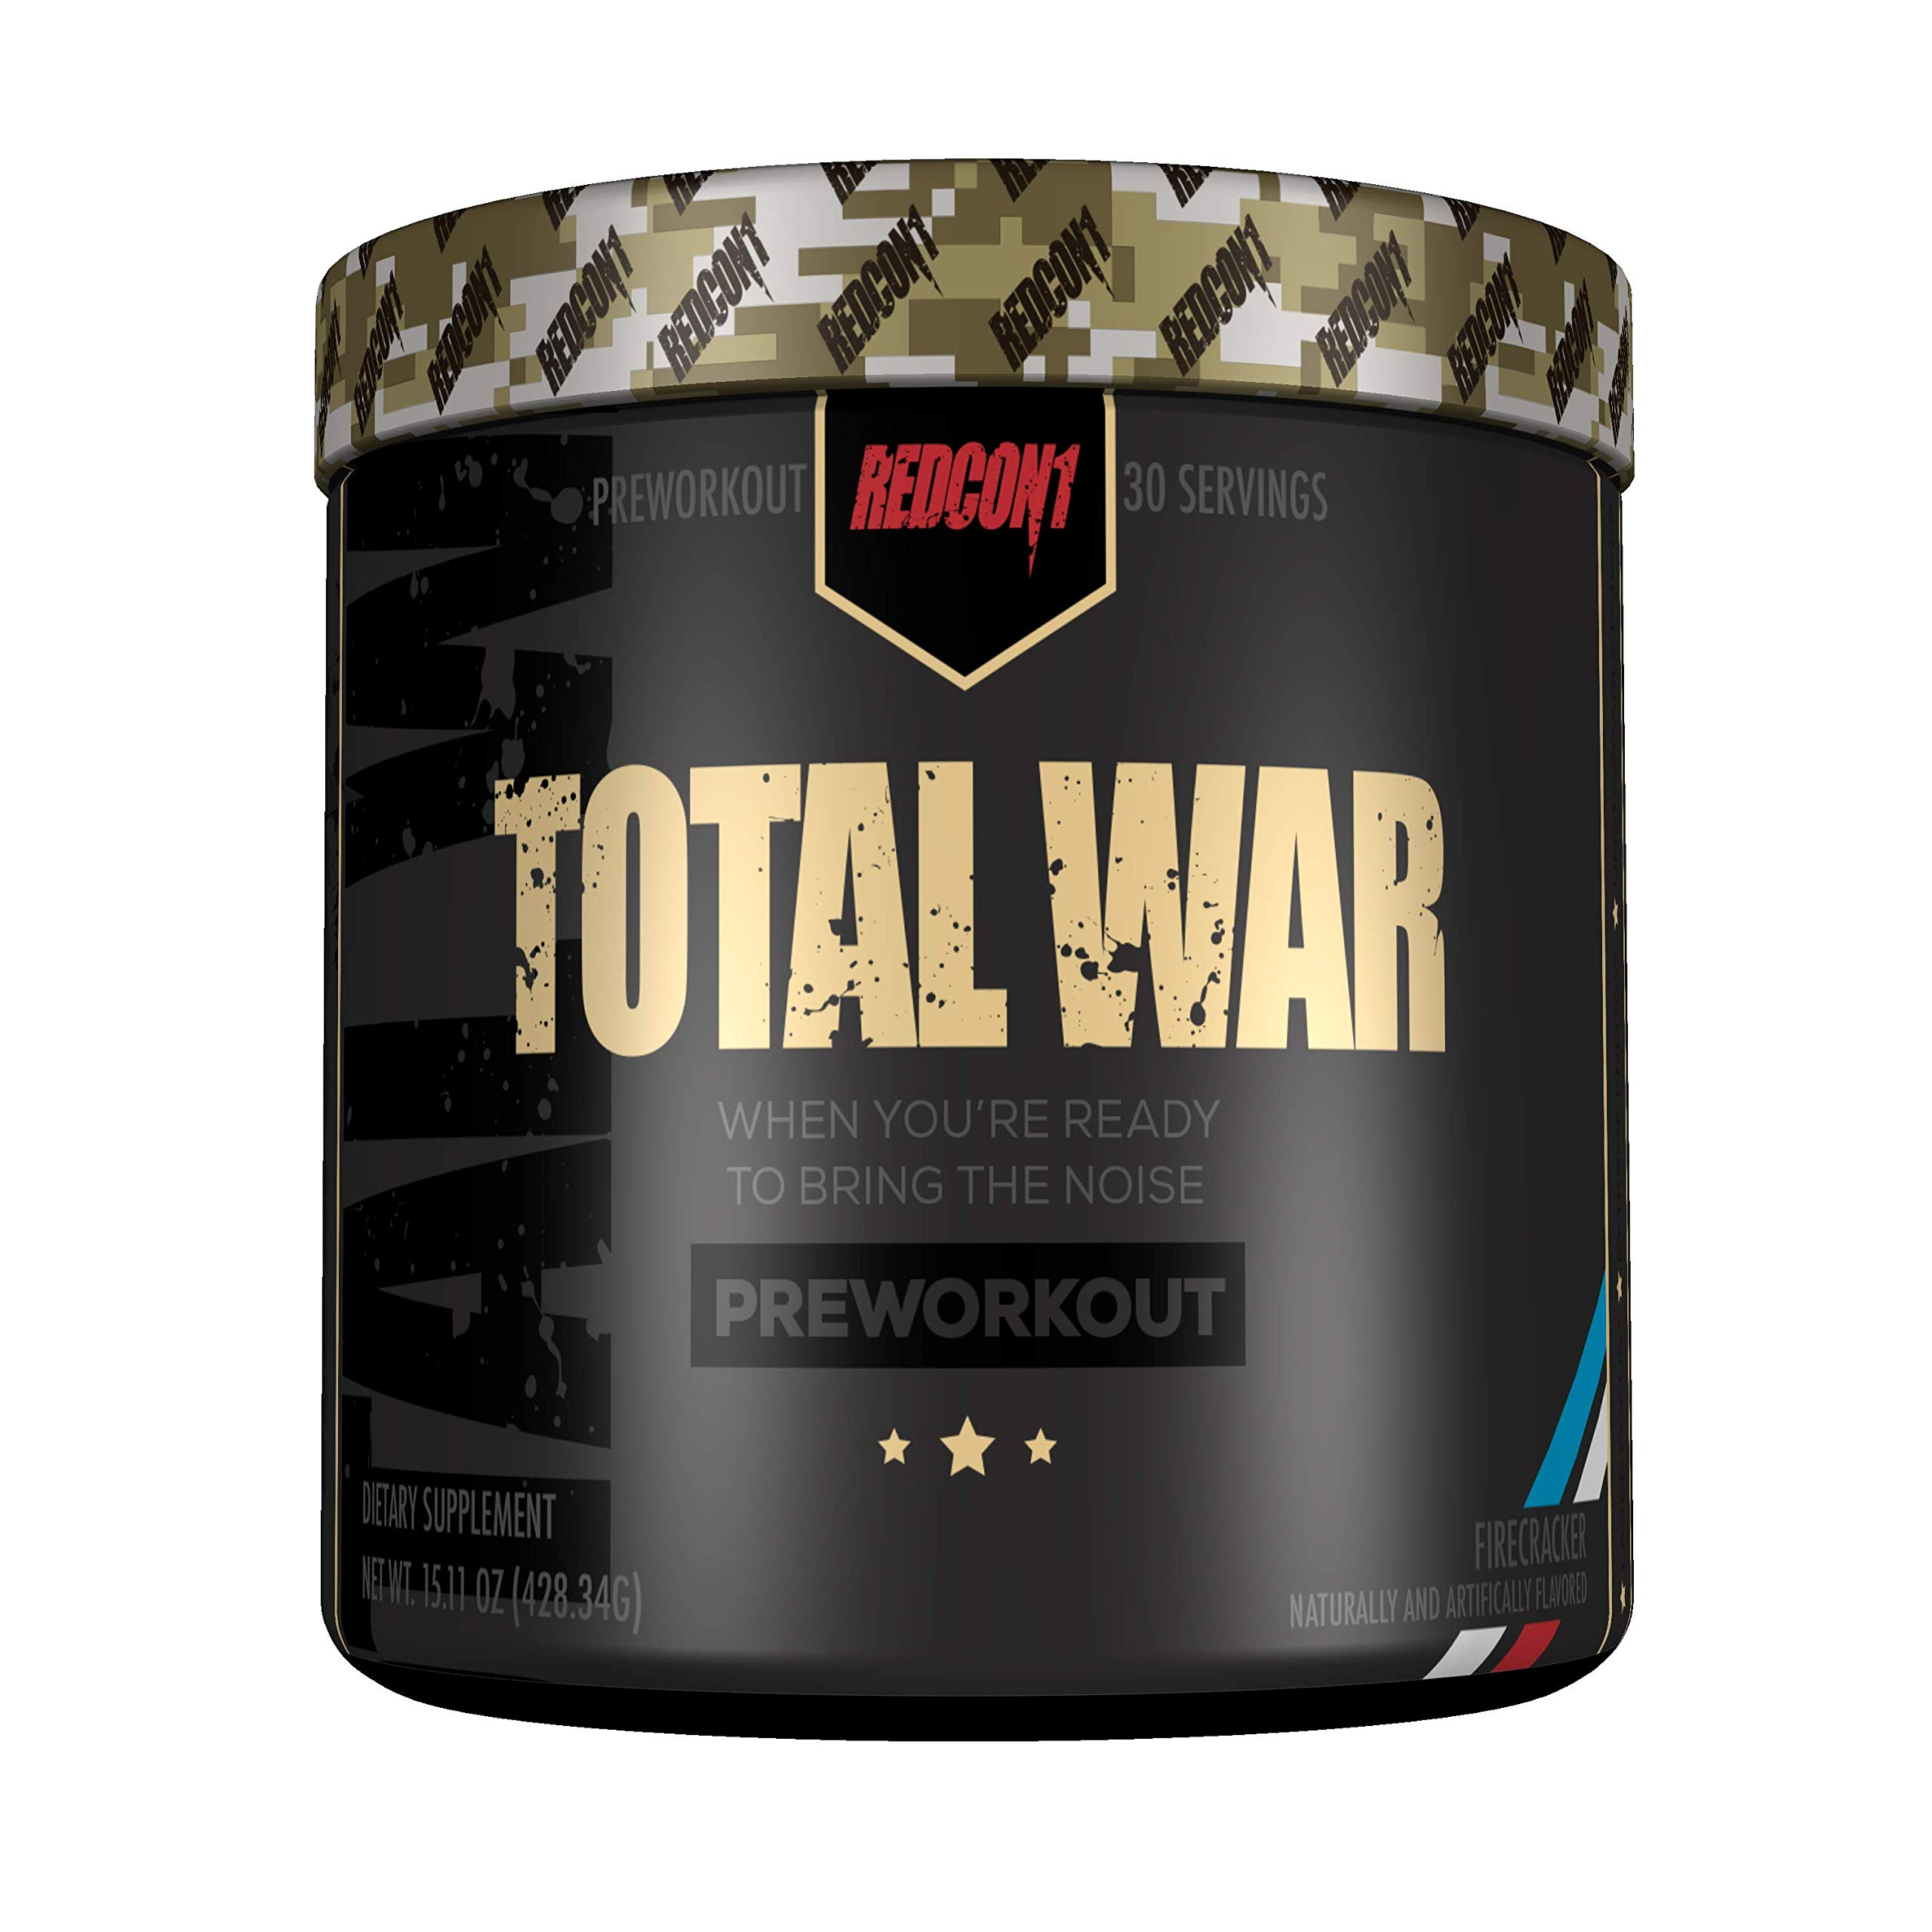 Redcon1 Total War - Pre Workout - 30 Servings - Newly Formulated (Firecracker) by Redcon1 (Image #1)